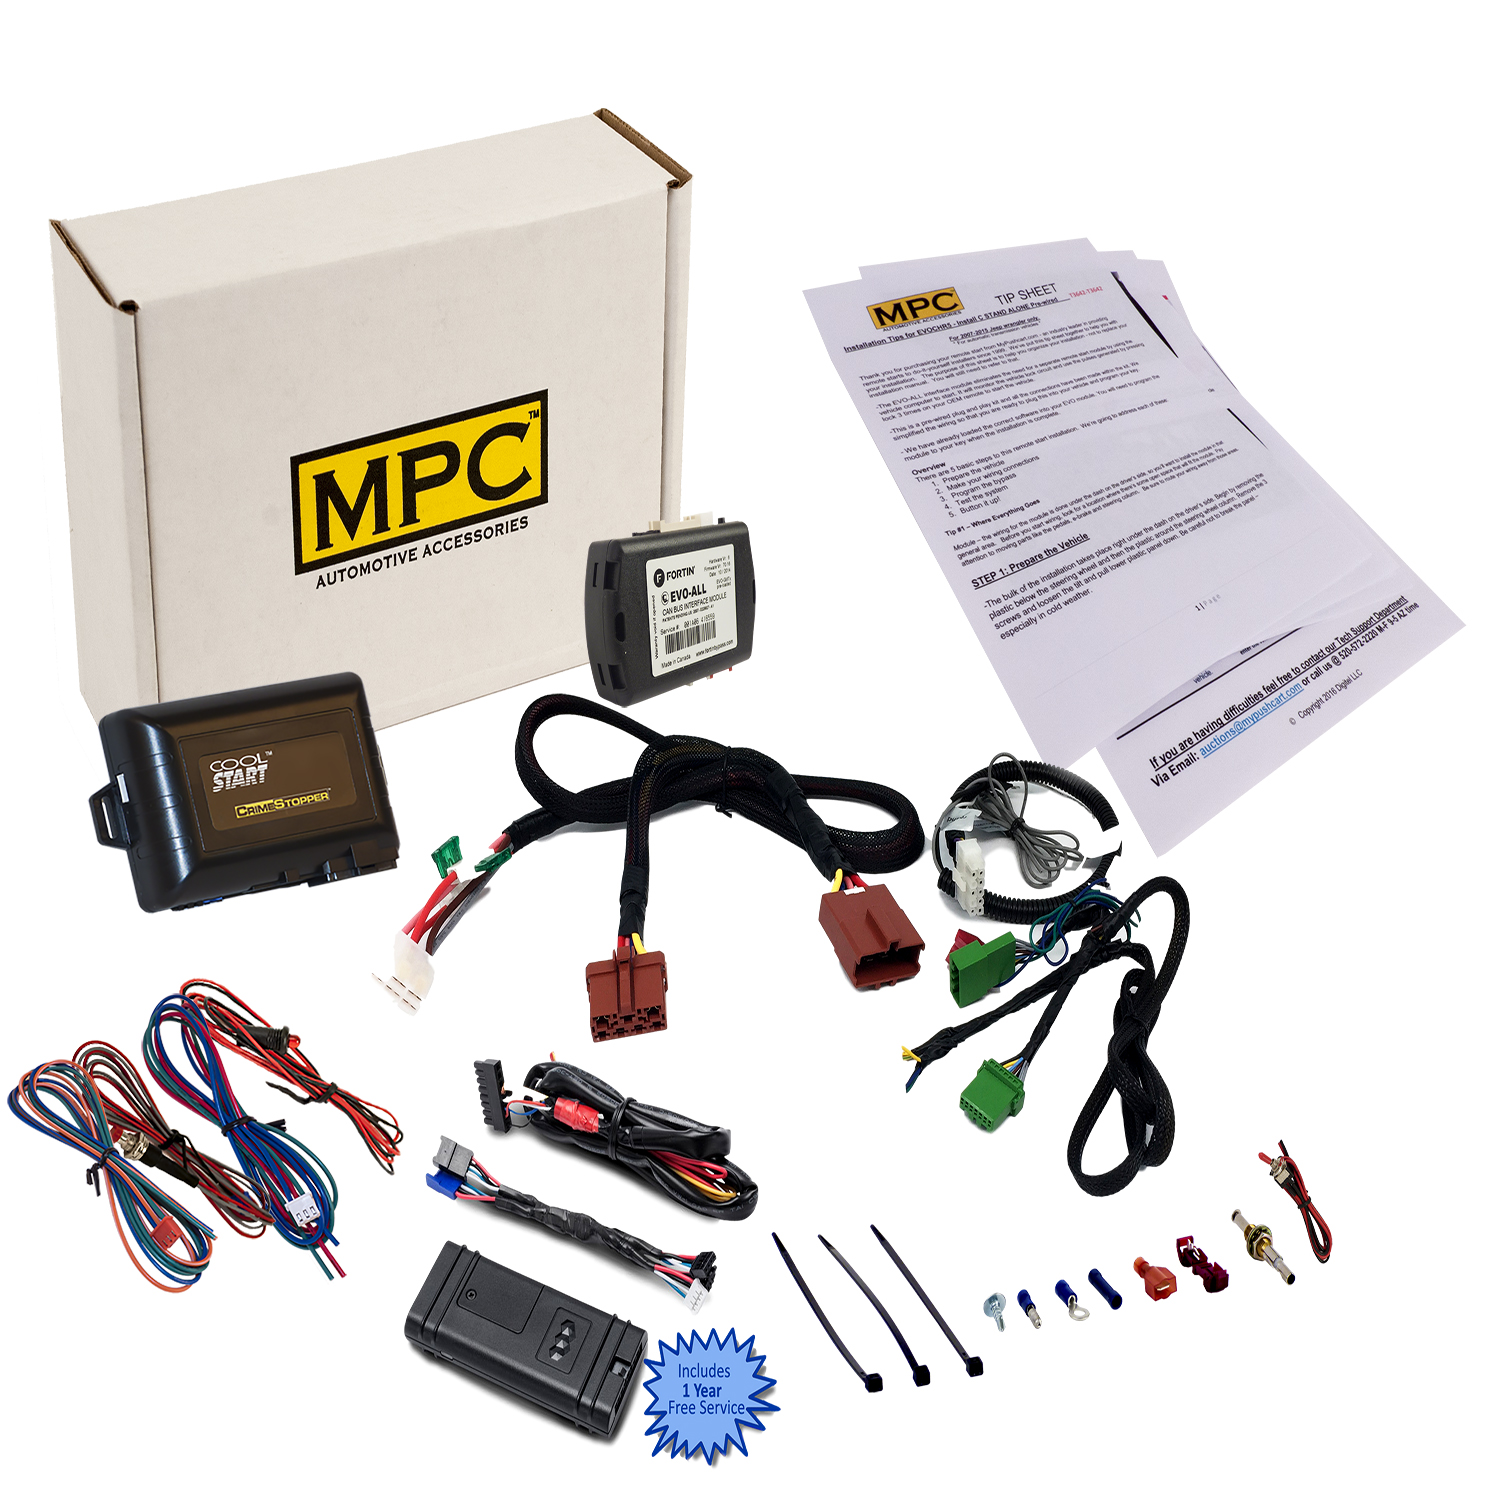 Smartphone/OEM Remote Activated Remote Start Kit For 2007